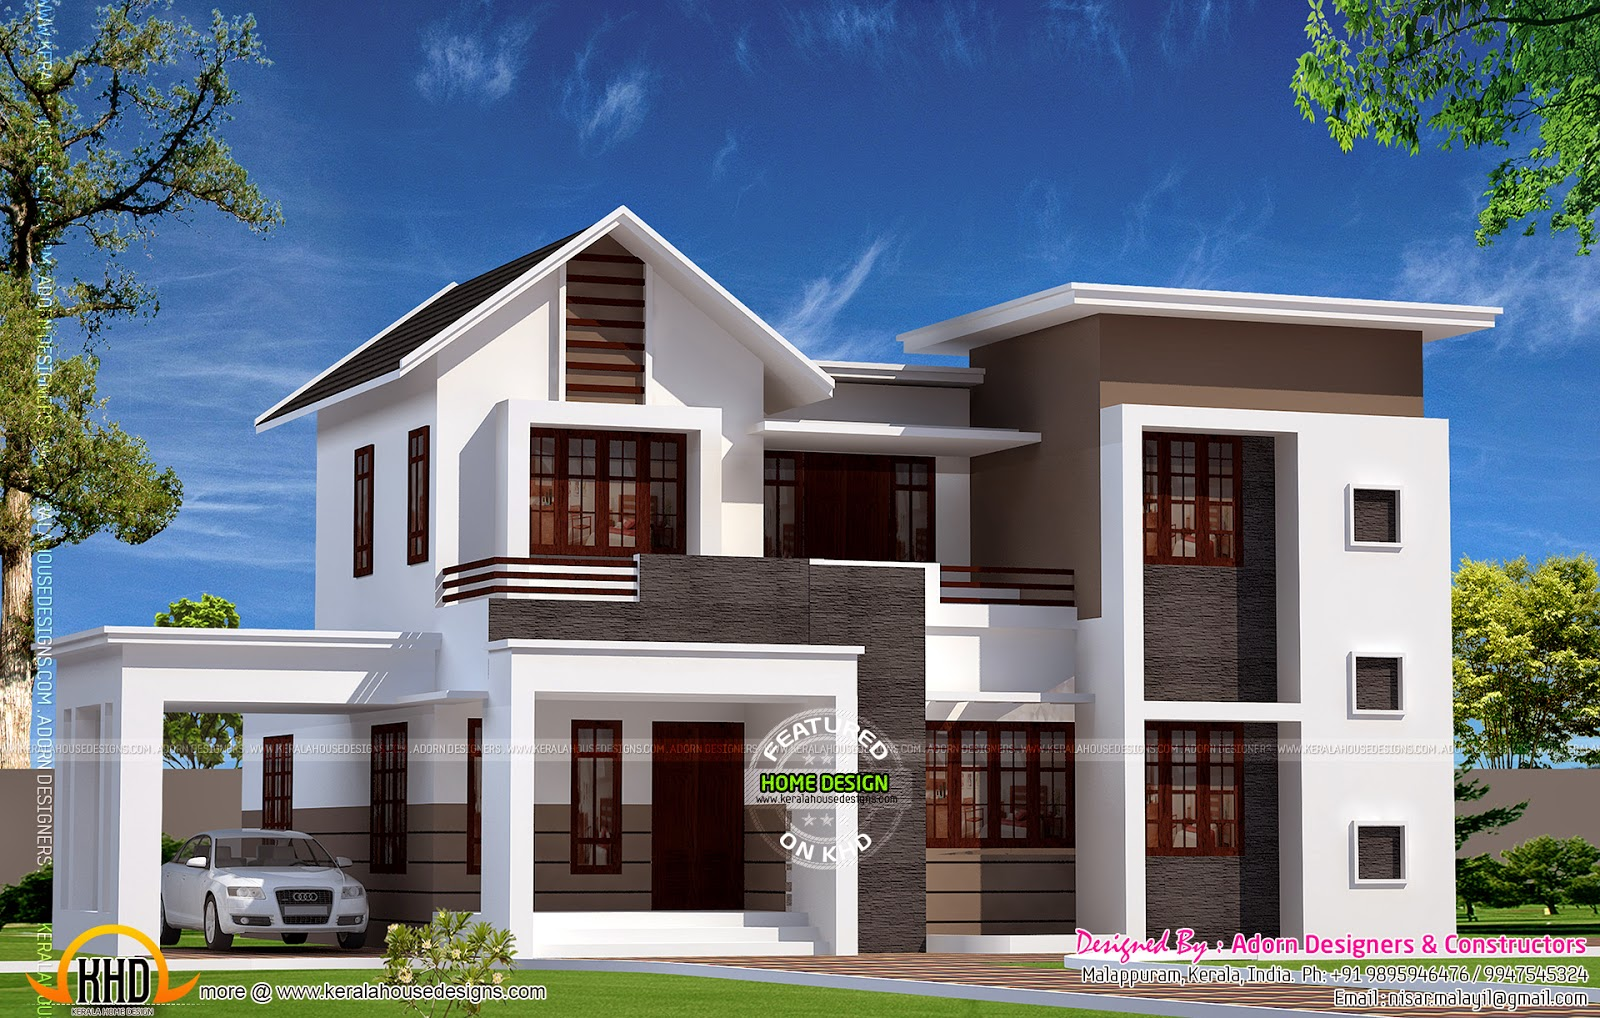 September 2014 kerala home design and floor plans for Home designs and plans